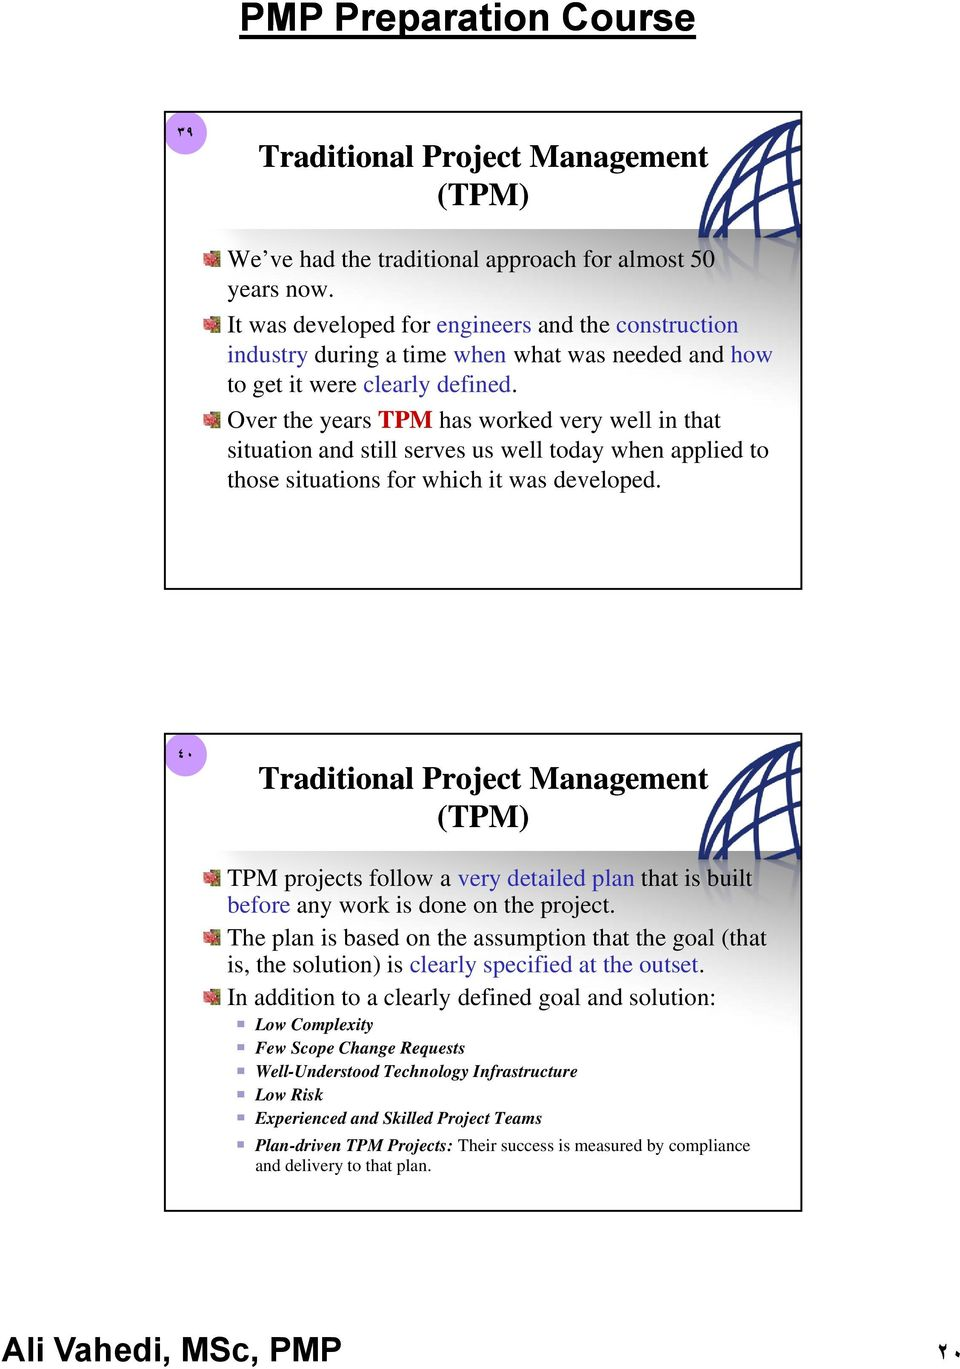 Over the years TPM has worked very well in that situation and still serves us well today when applied to those situations for which it was developed.